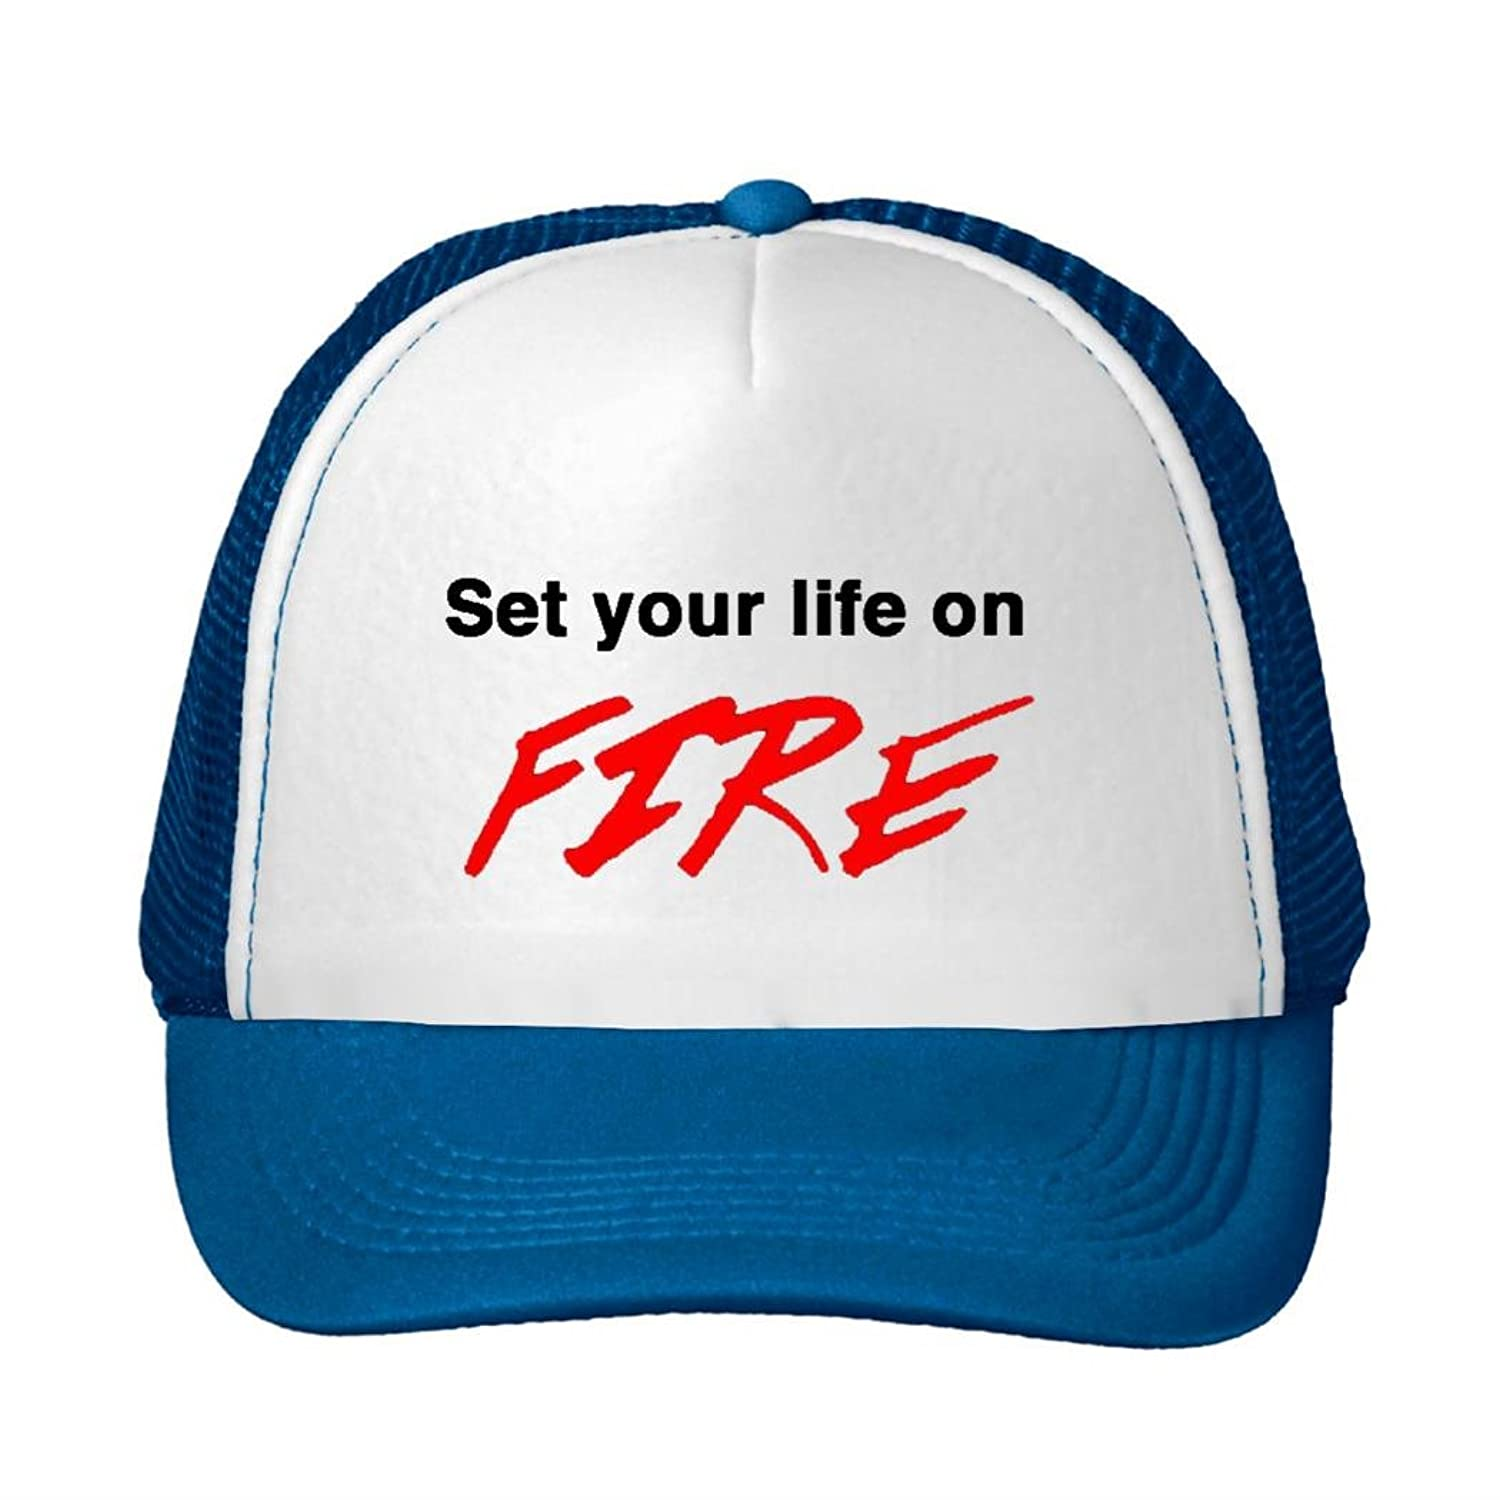 Corey Fantastic Baseball Cap Set Your Life On Fire Snapback Trucker Hat